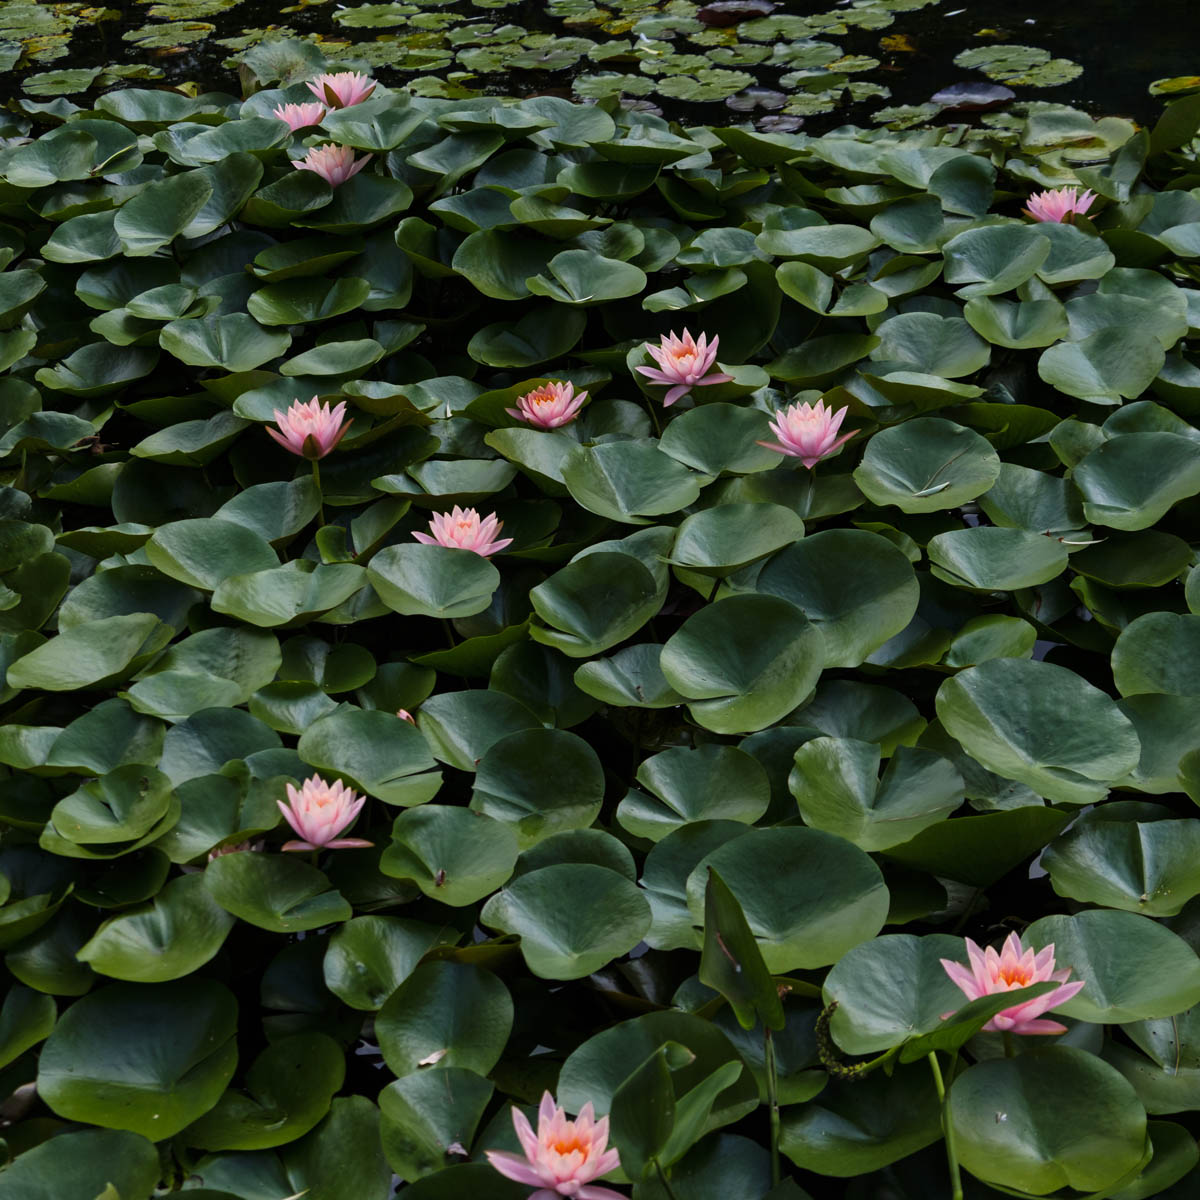 Free stock photo High angle view of water lilies and leaves floating on pond